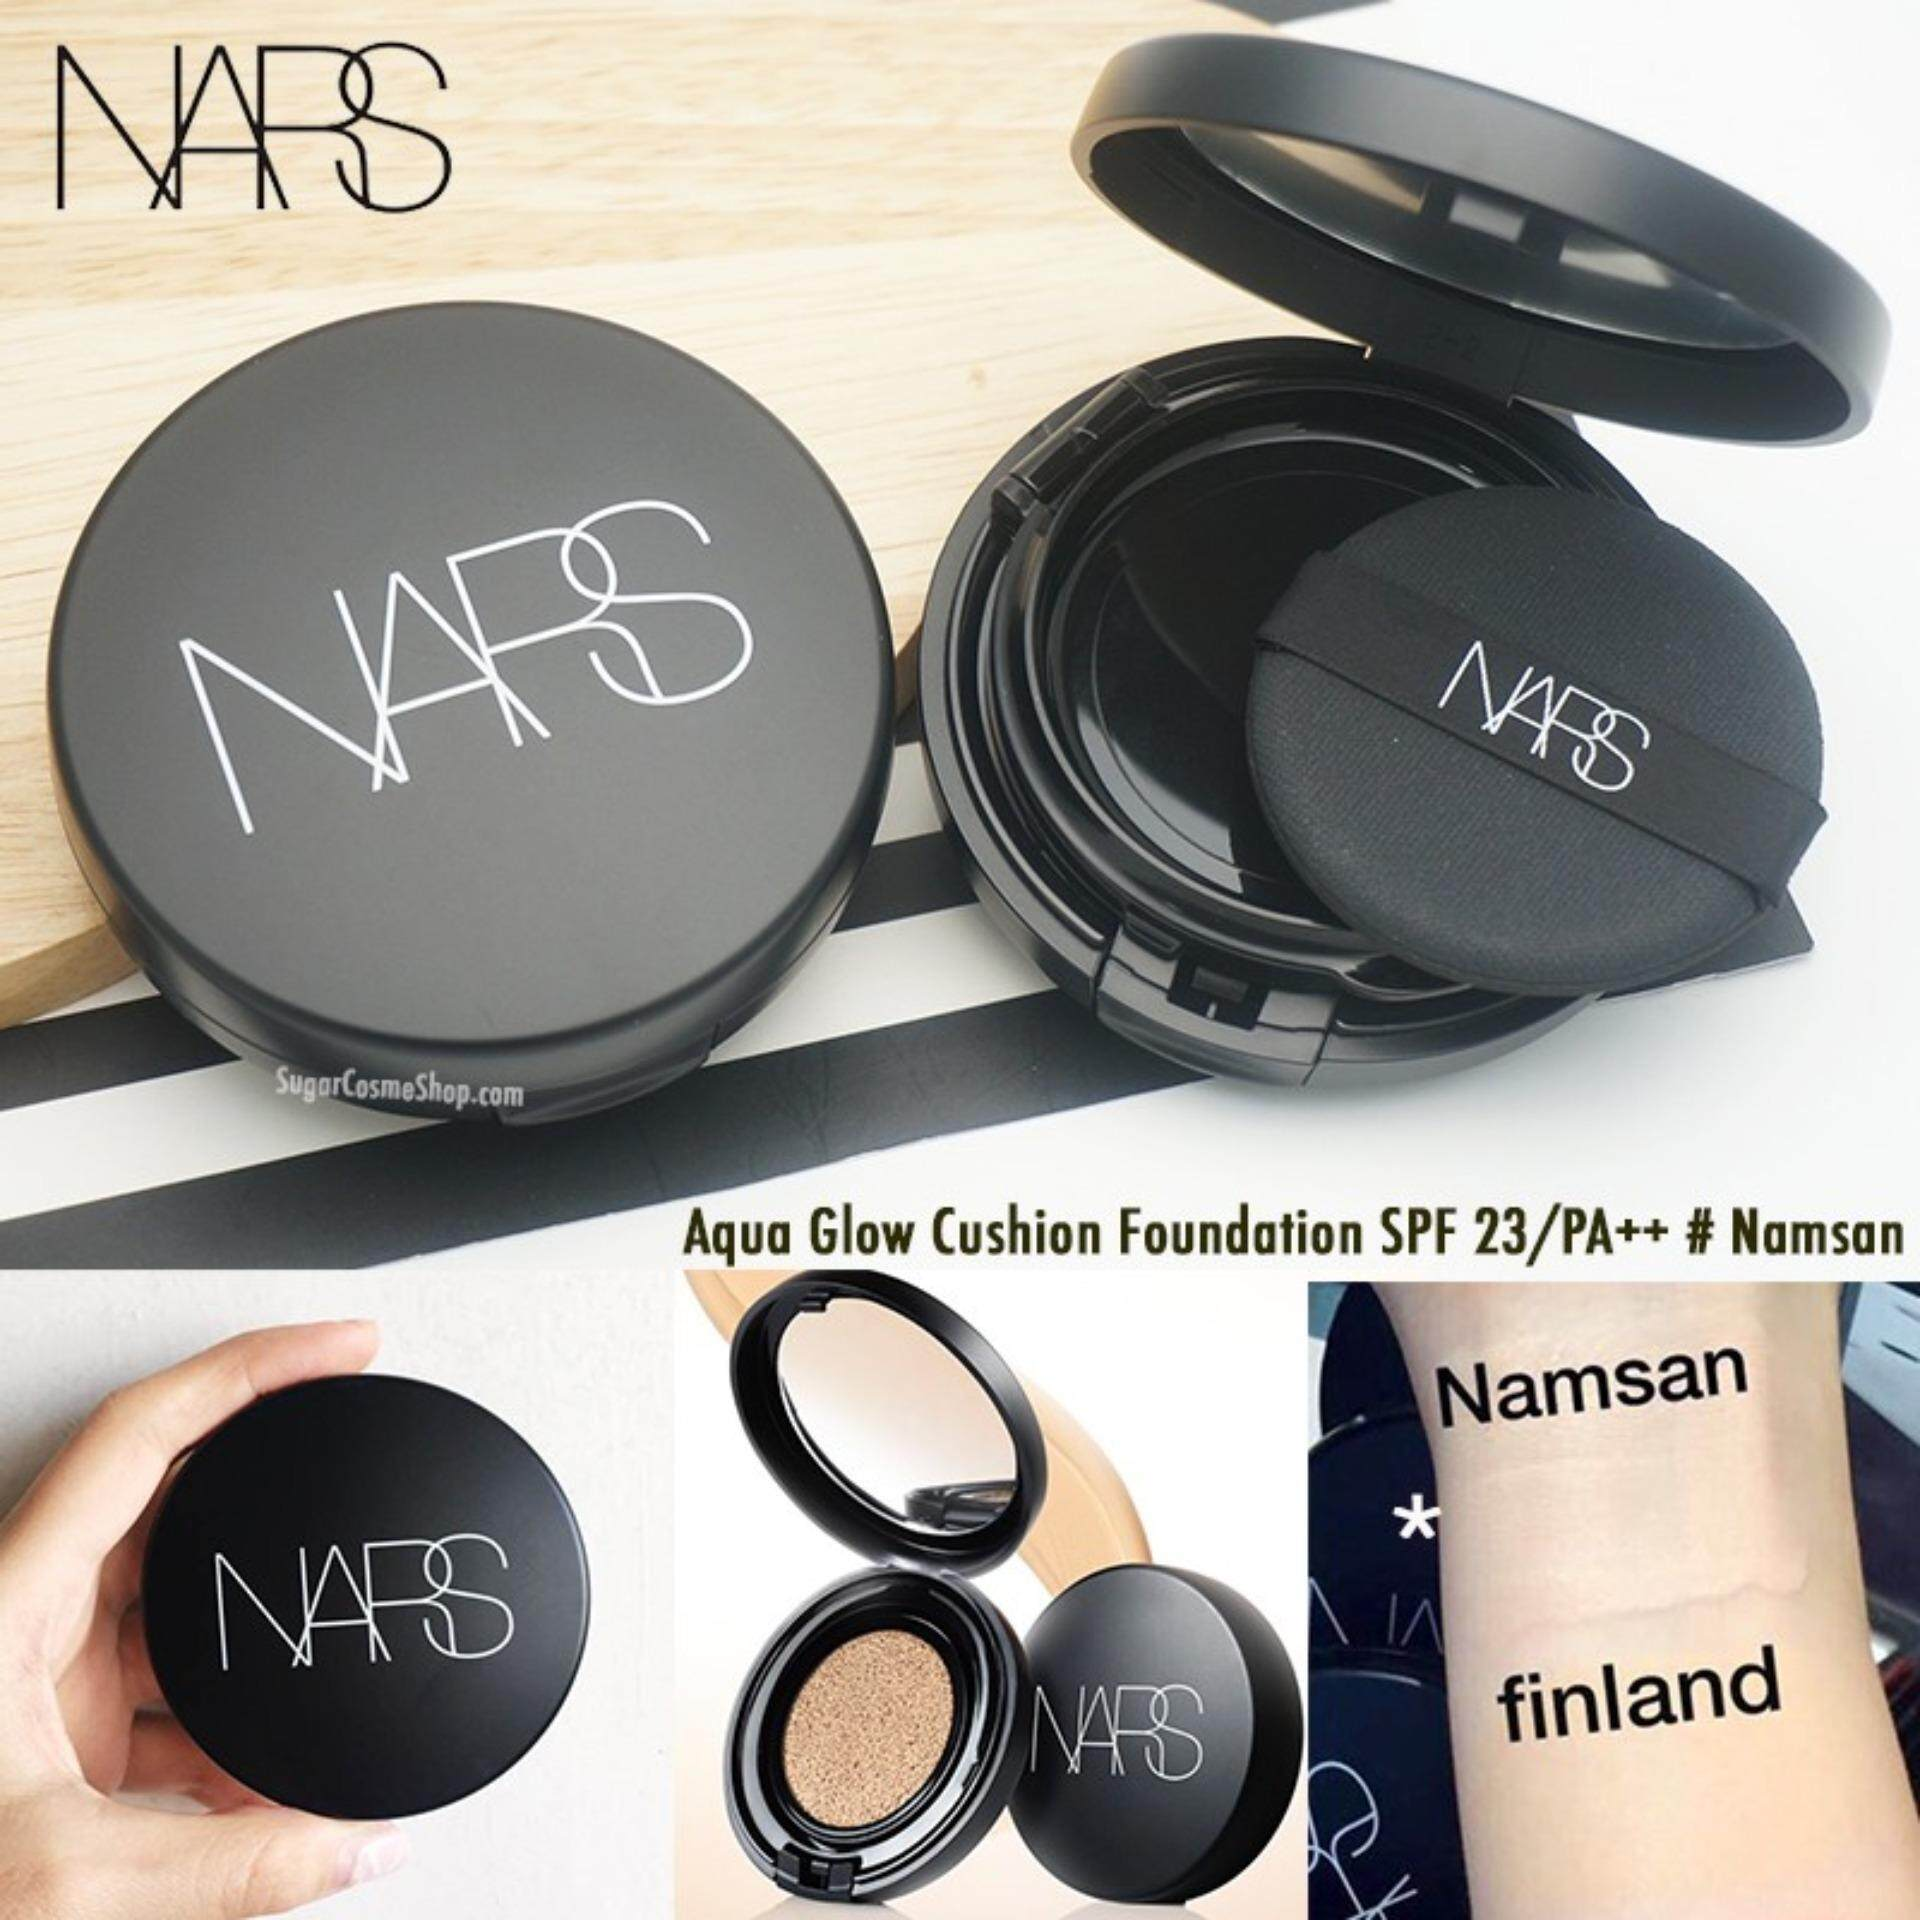 NARS - Fusion Ink Cushion Liquid Foundation Compact with SPF 23 / PA ++  - Code 20